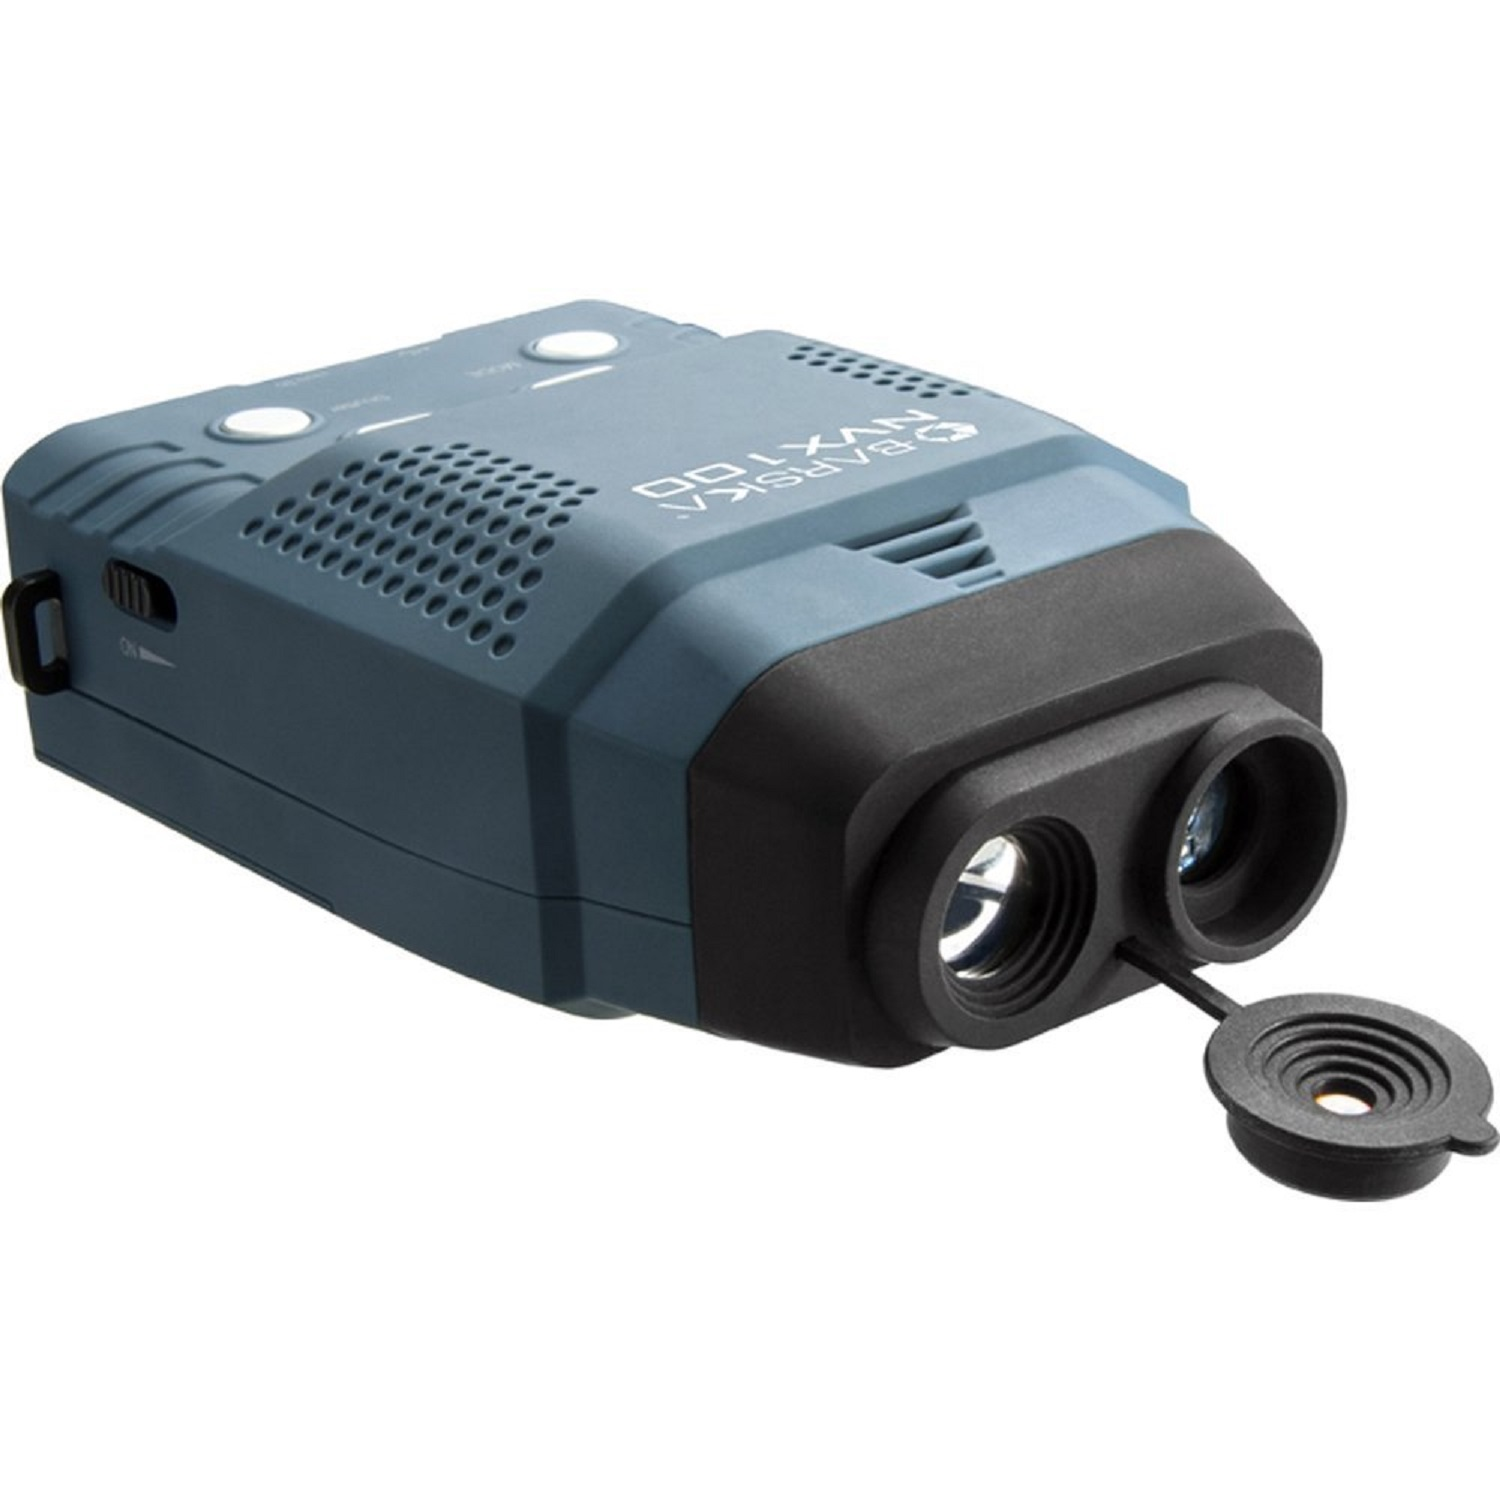 Barska Optics 3X Digital Night Vision Monocular